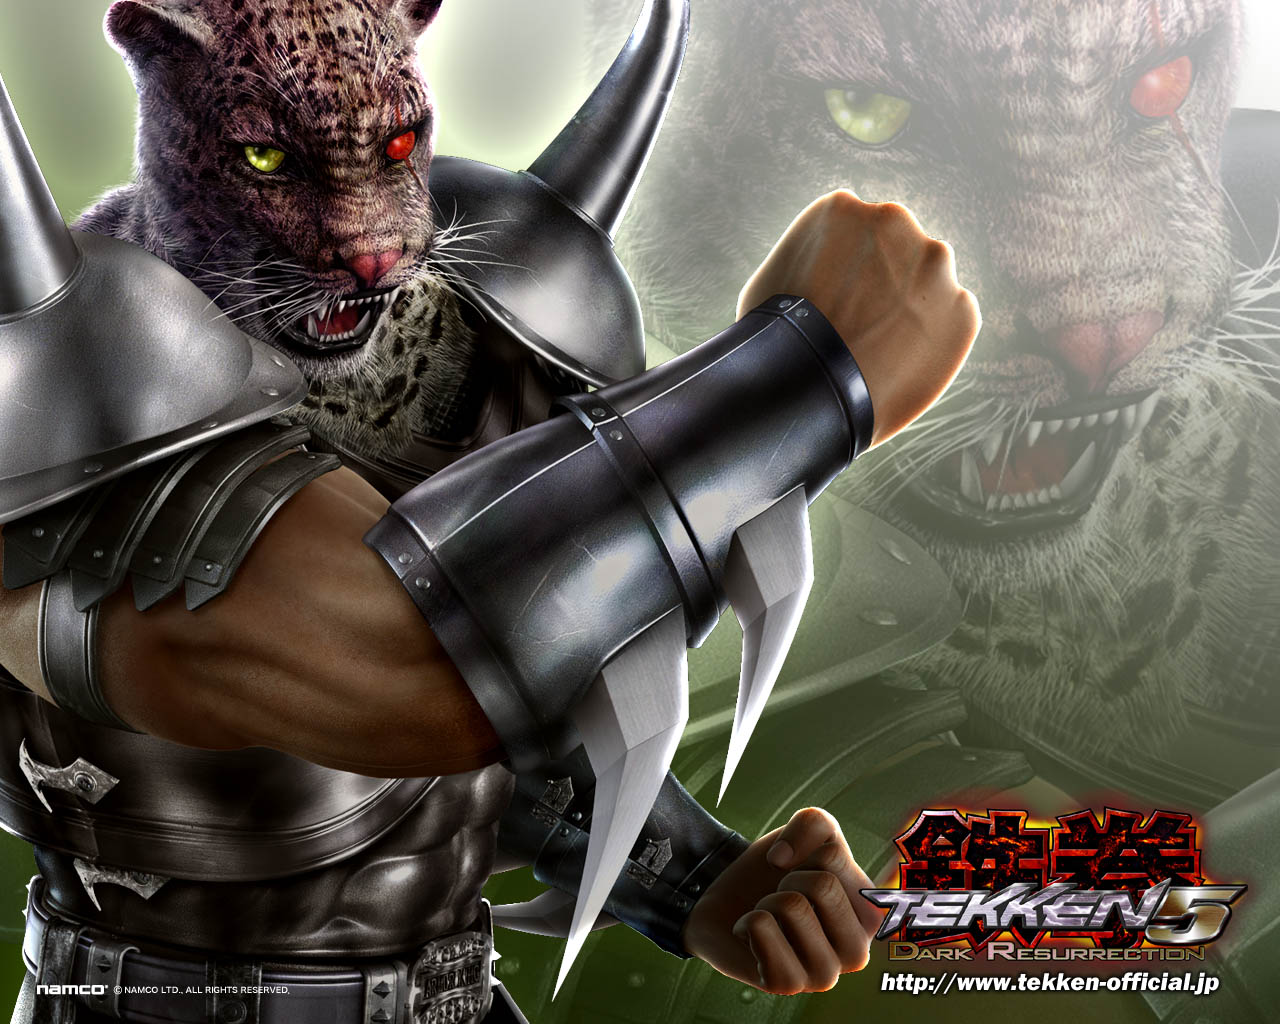 Dark Resurrection Wallpaper - Tekken 1280x1024